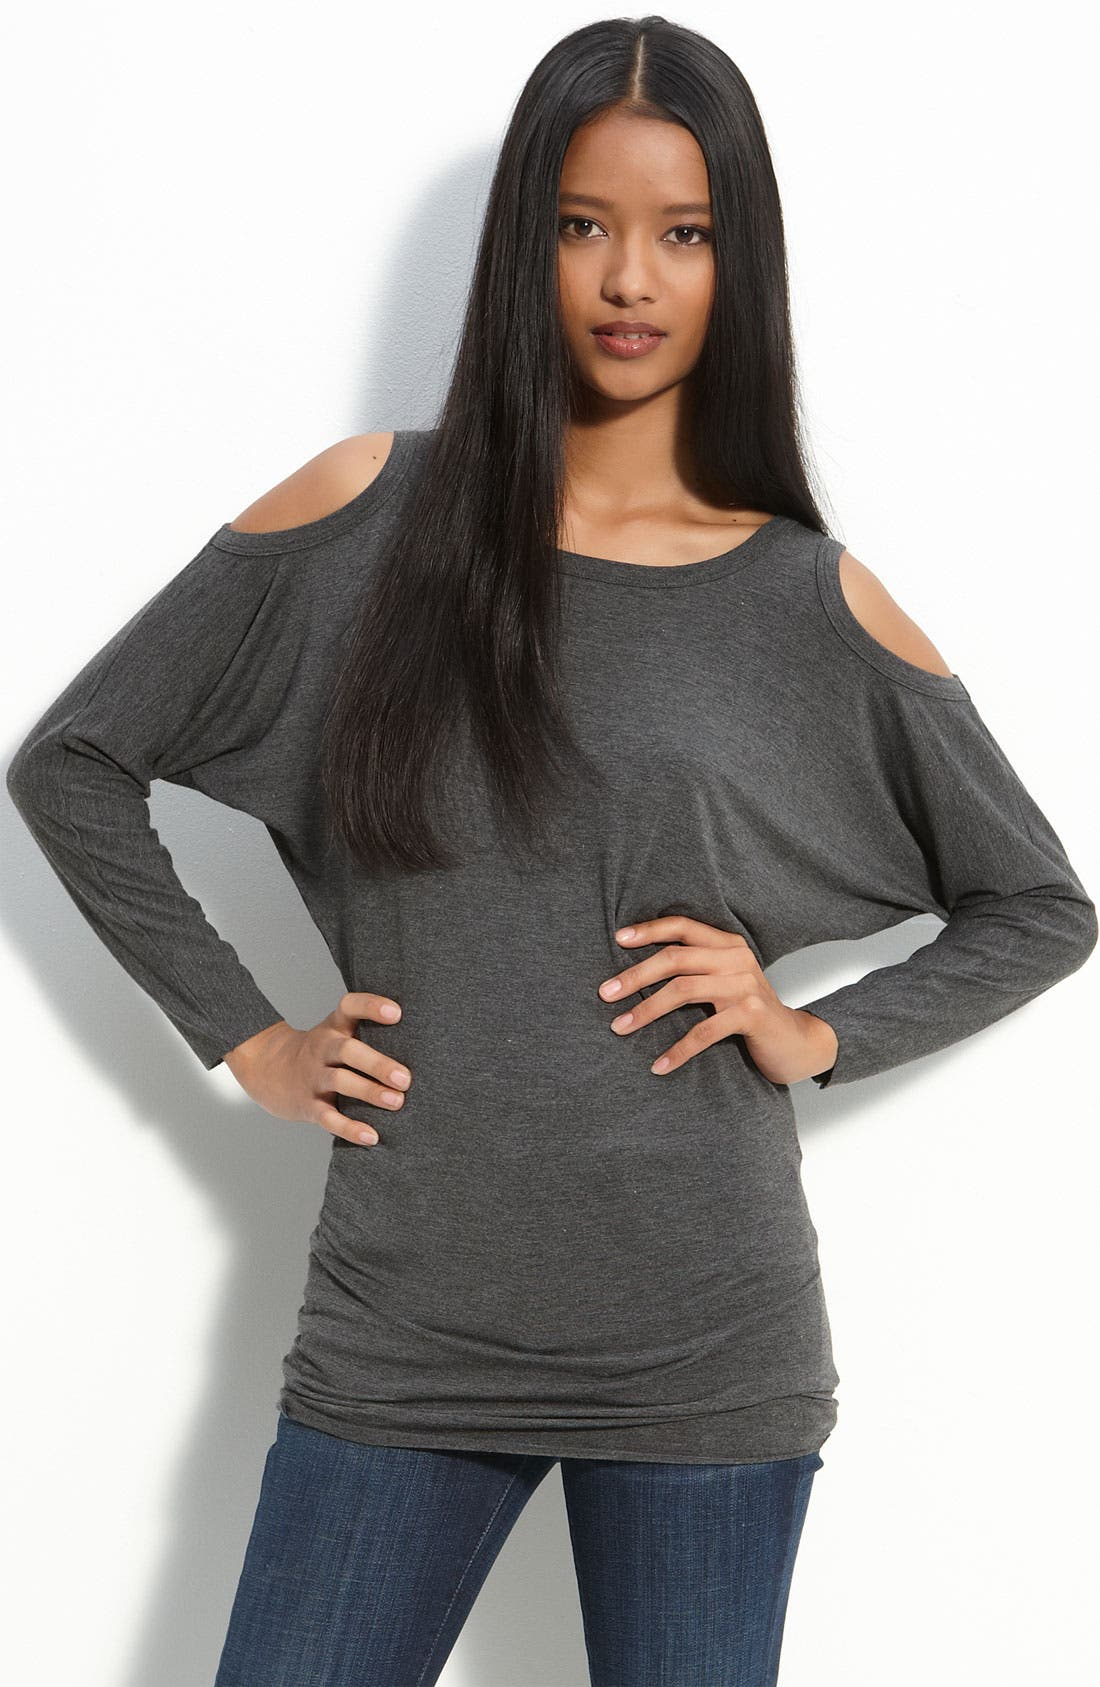 Alternate Image 1 Selected - Bailey 44 'Solid Half Time' Top